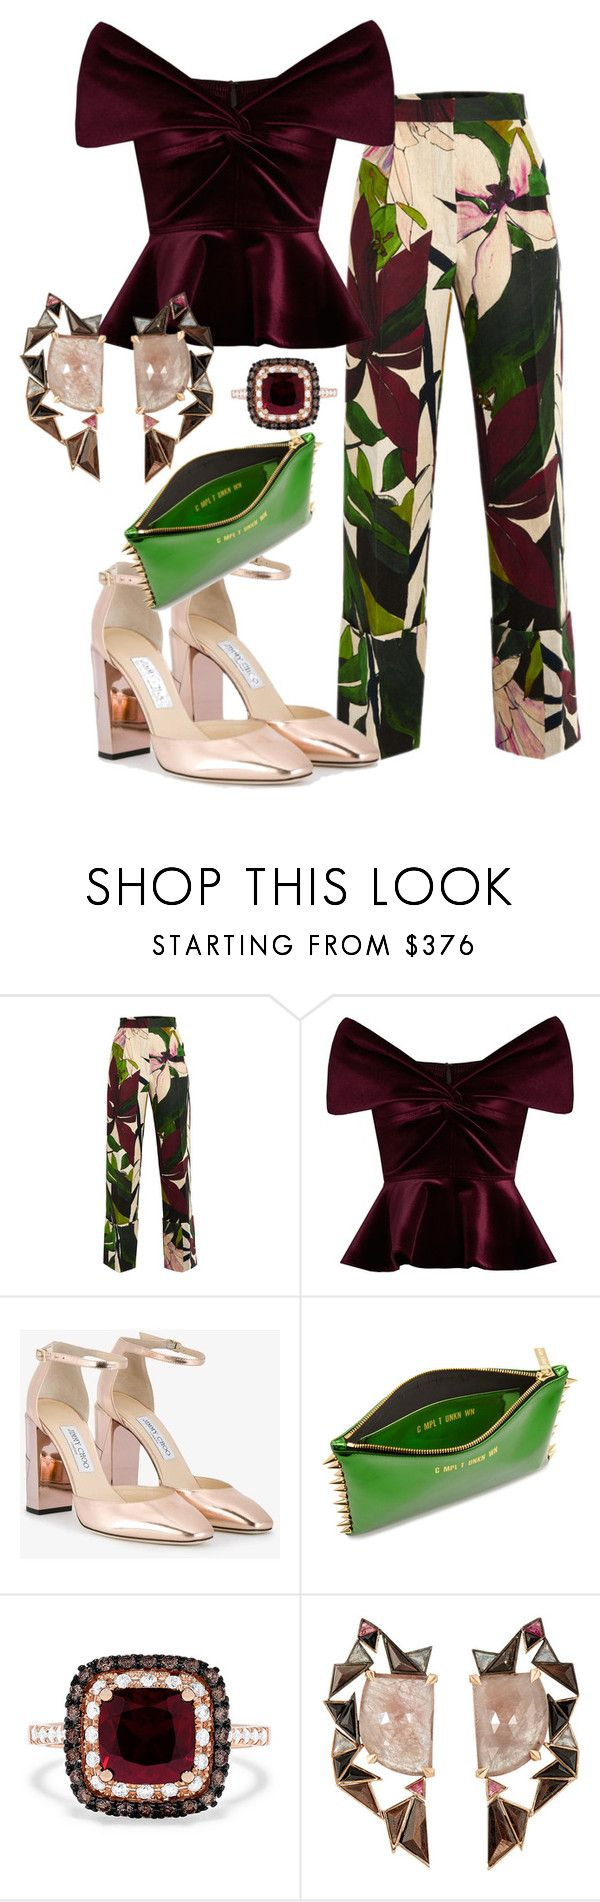 """""""Tropical Ensemble"""" by xingandco ❤ liked on Polyvore featuring Erika Cavallini Semi-Couture, Emilio De La Morena, Jimmy Choo, Effy Jewelry and Nak Armstrong"""